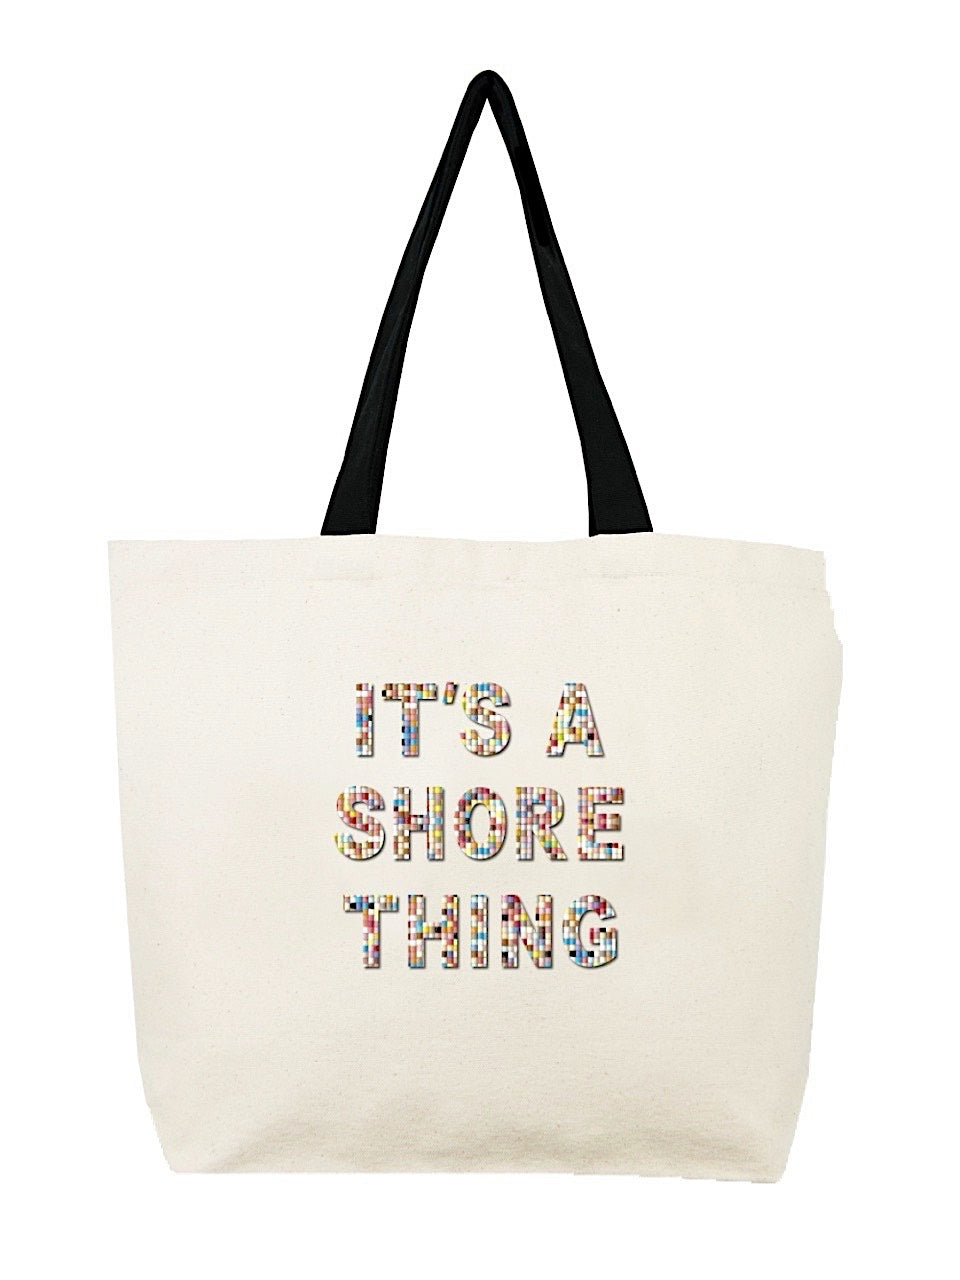 It's A Shore Thing Tote